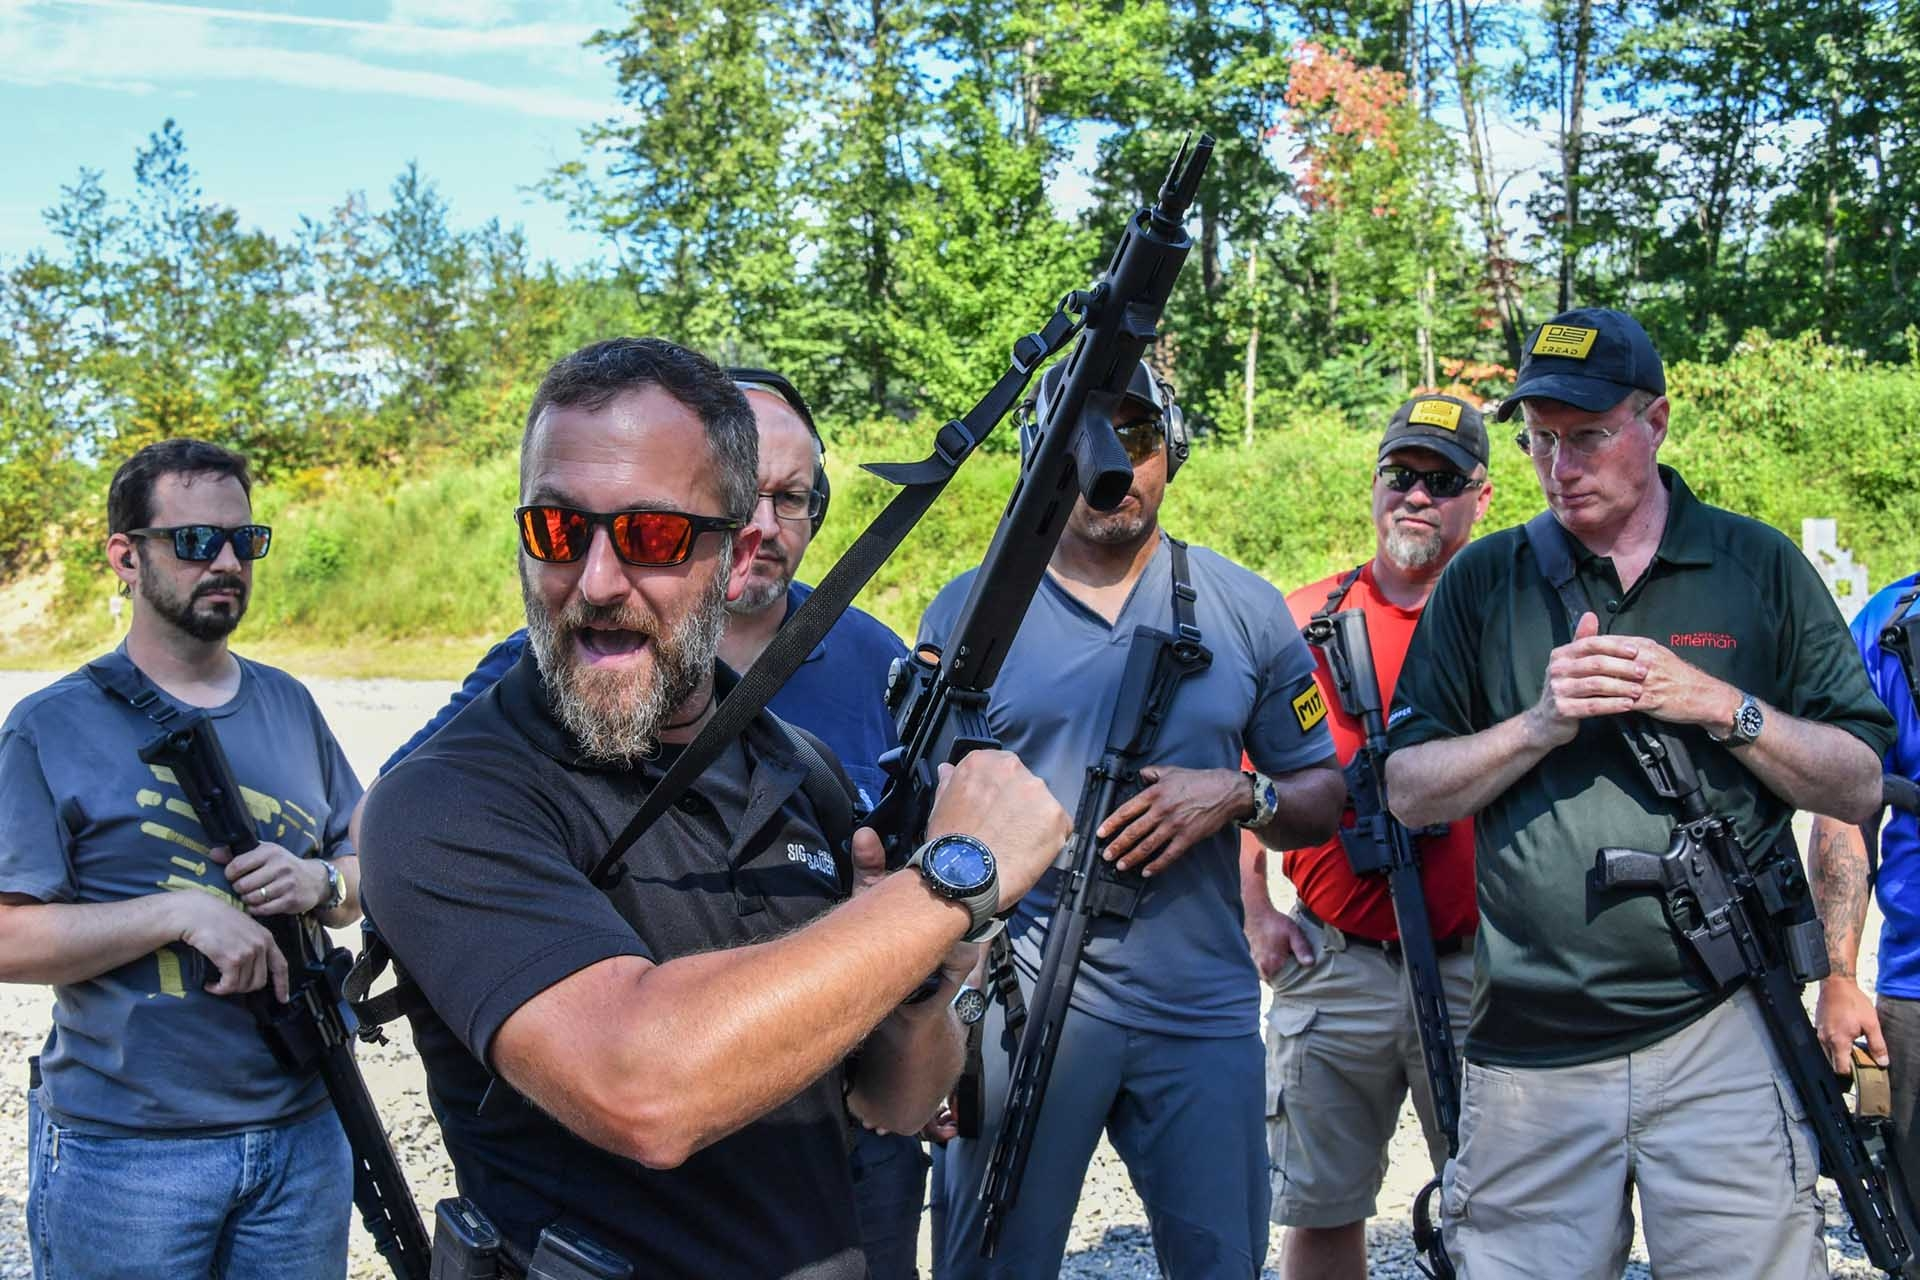 SIG instructors brief the media on the features of the SIG Sauer M400 TREAD